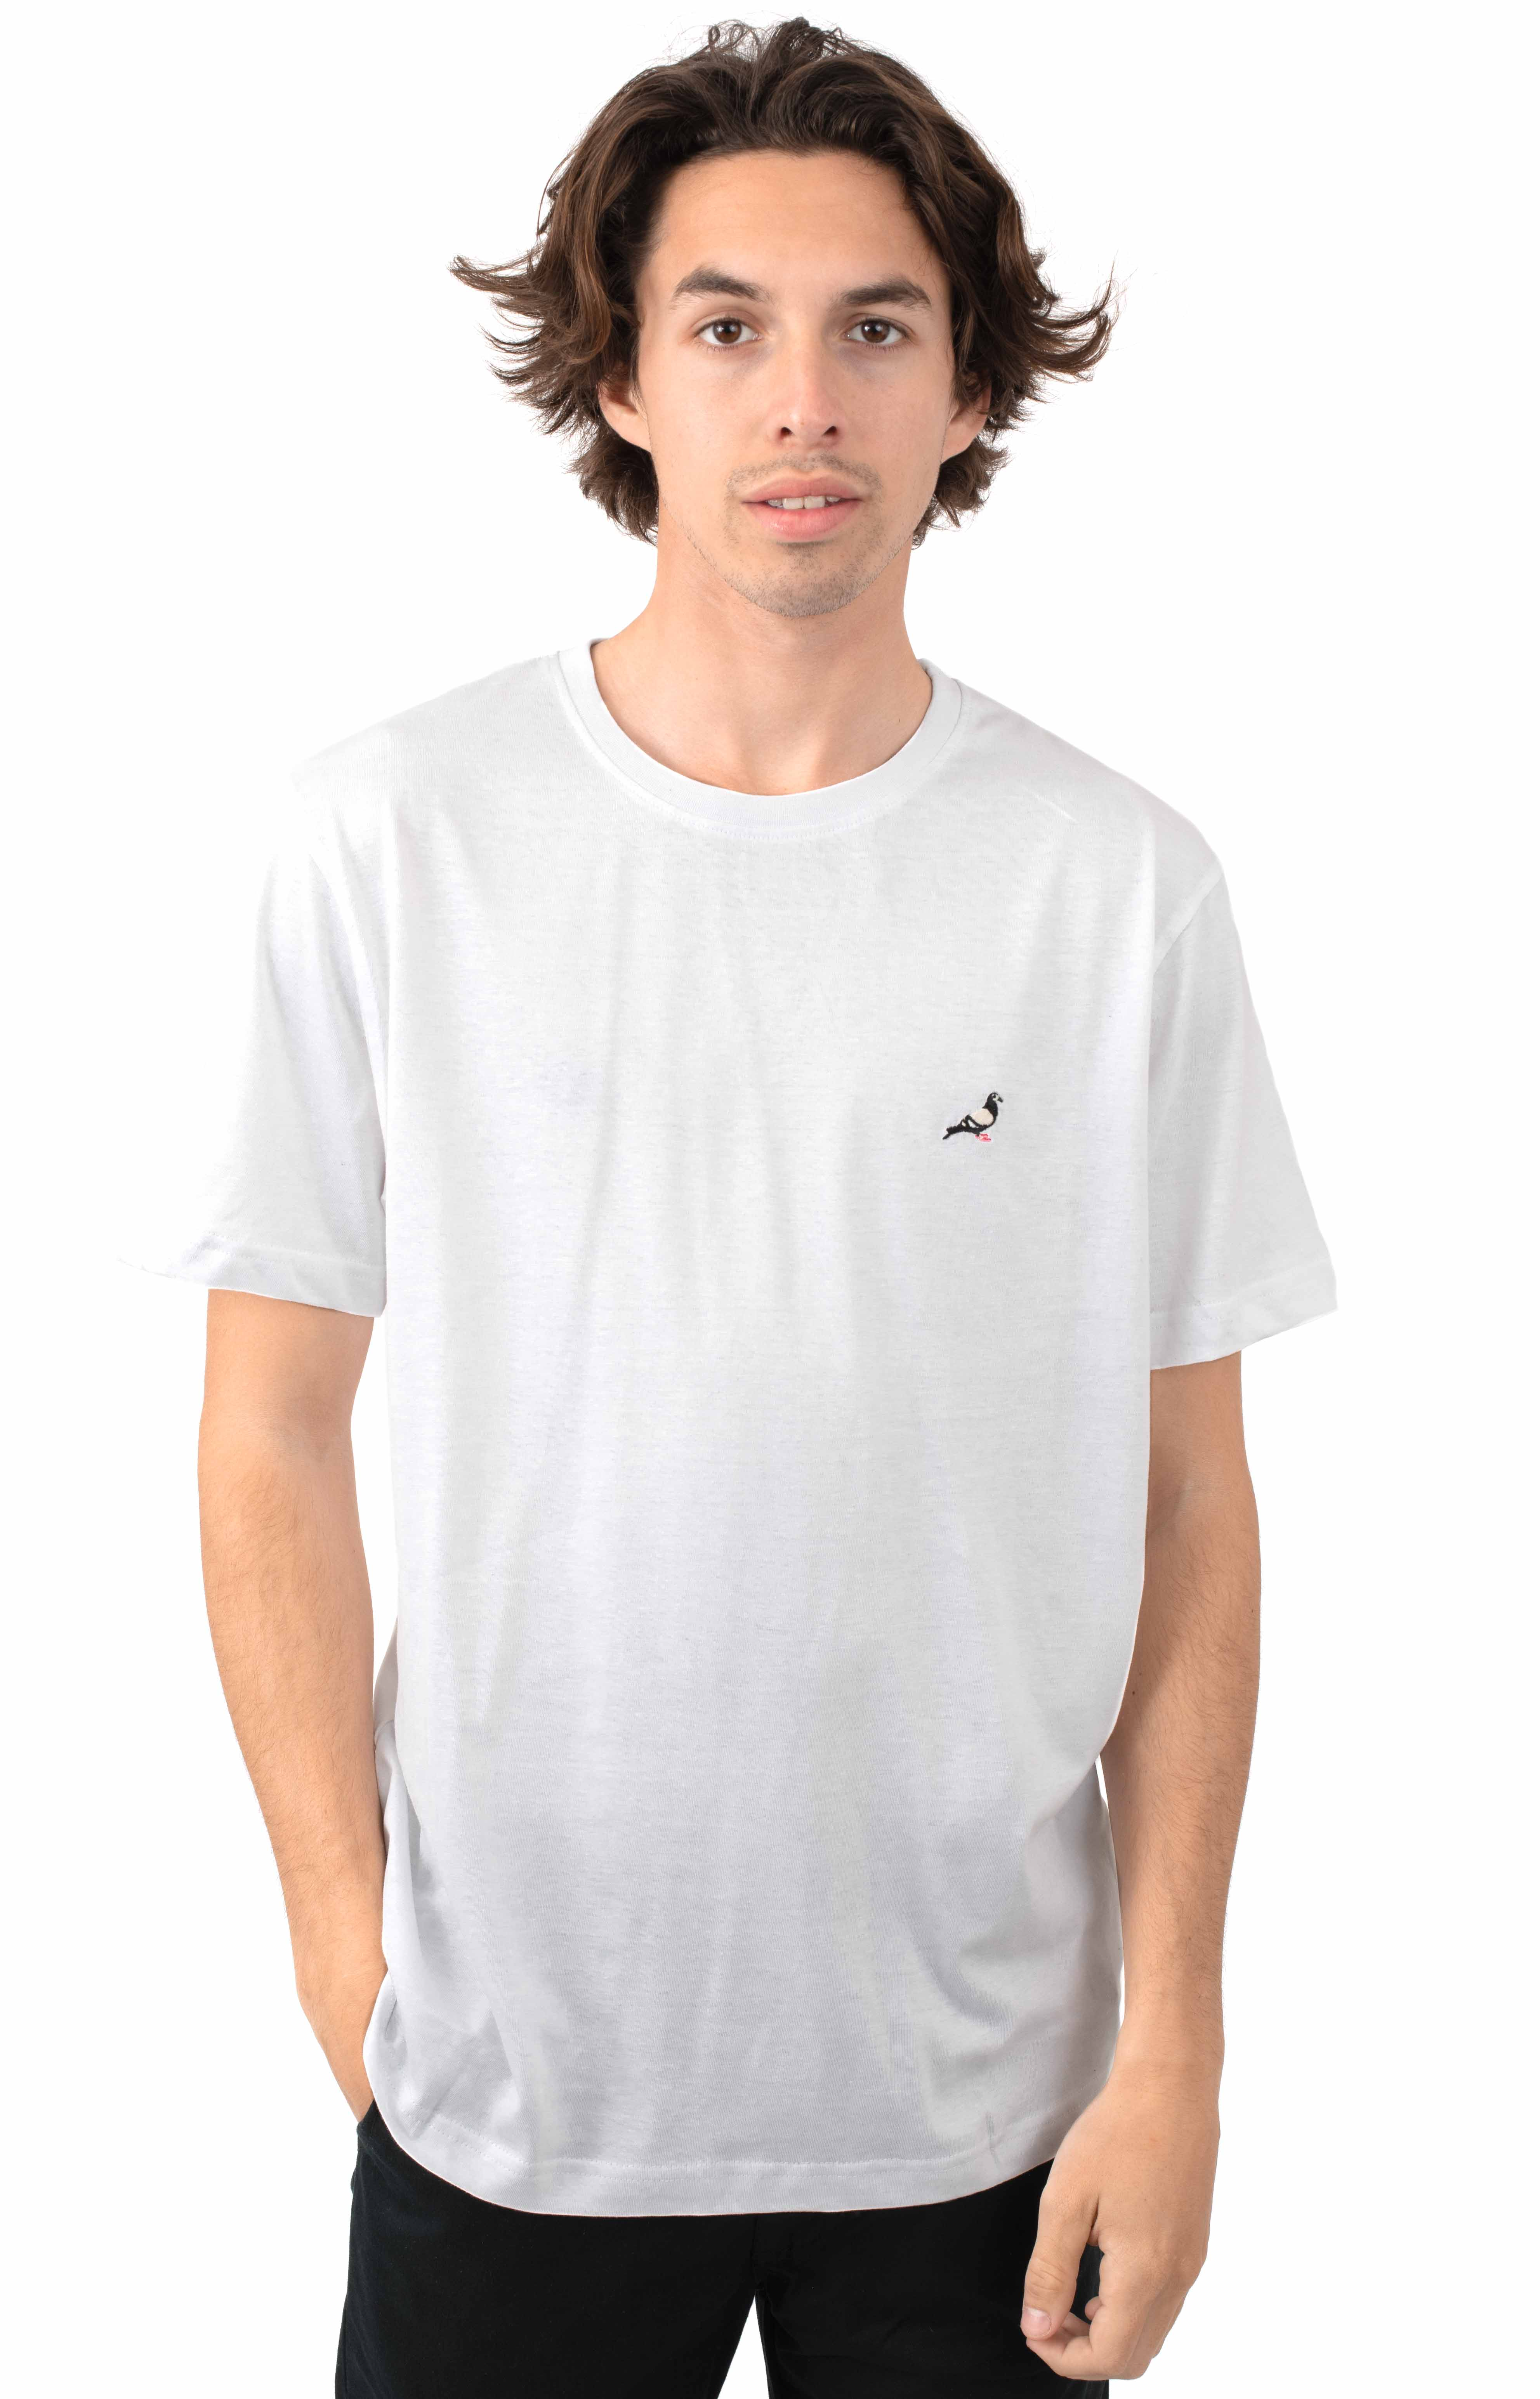 Pigeon Embroidered T-Shirt - White